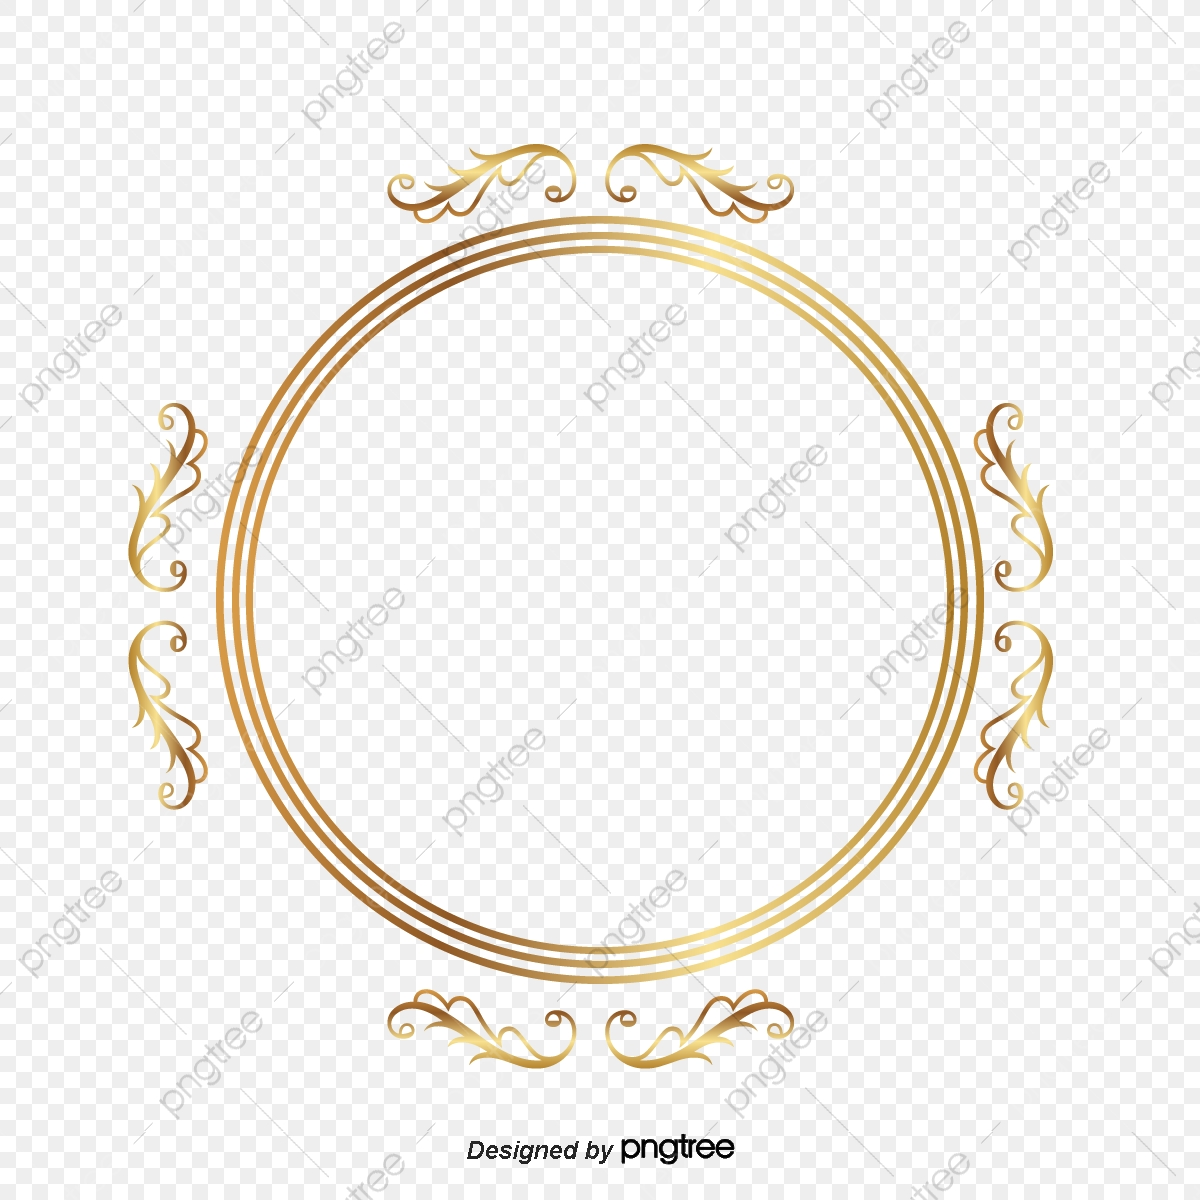 gold circle frame material circle clipart frame clipart circles png and vector with transparent background for free download https pngtree com freepng gold circle frame material 942232 html